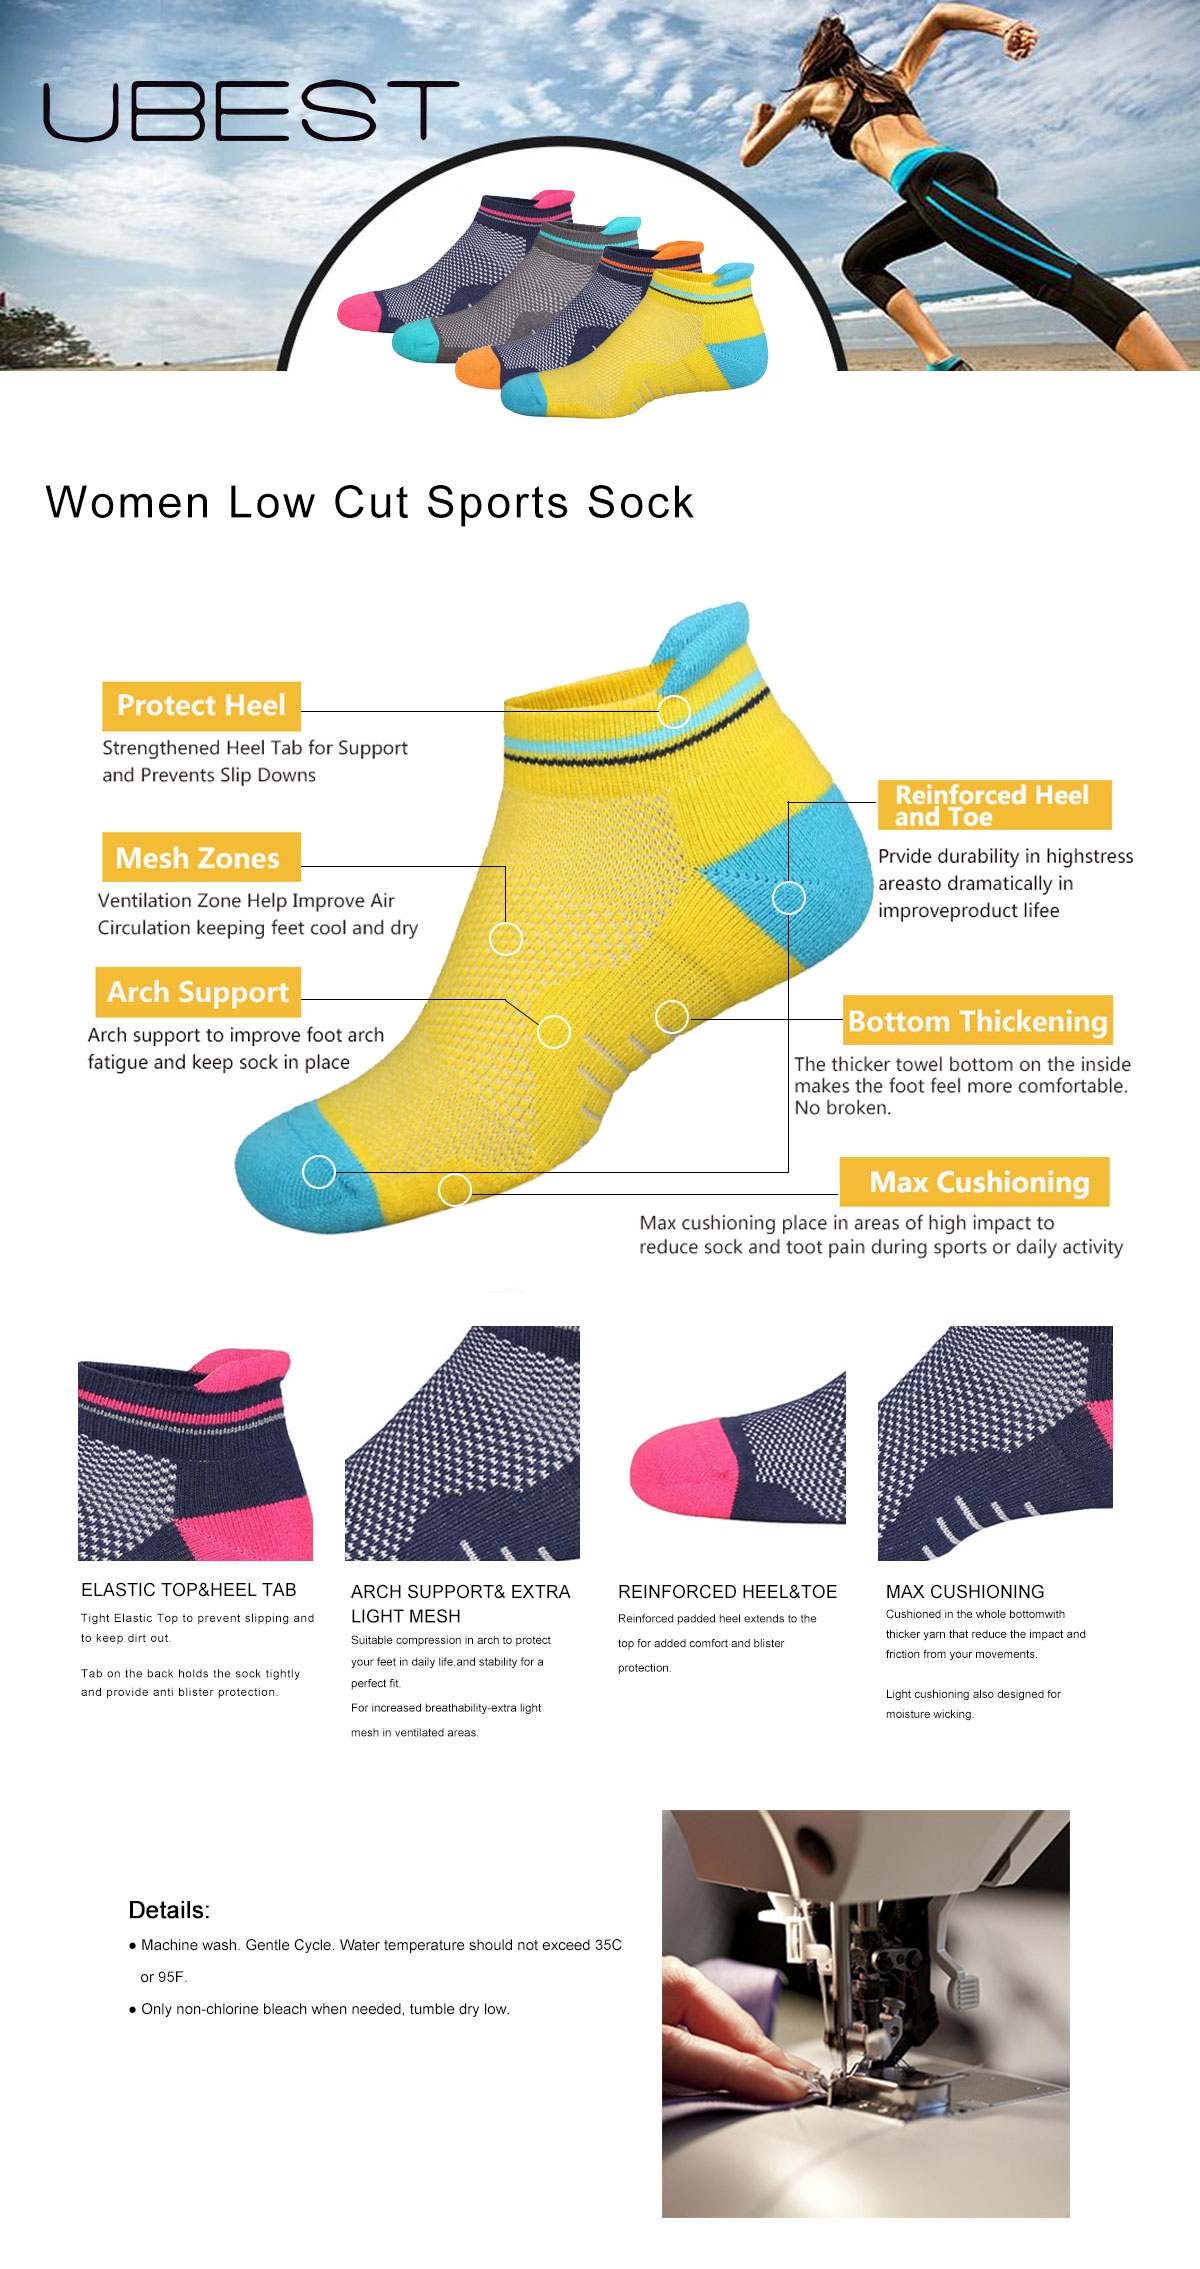 Women Low Cut Sports Sock